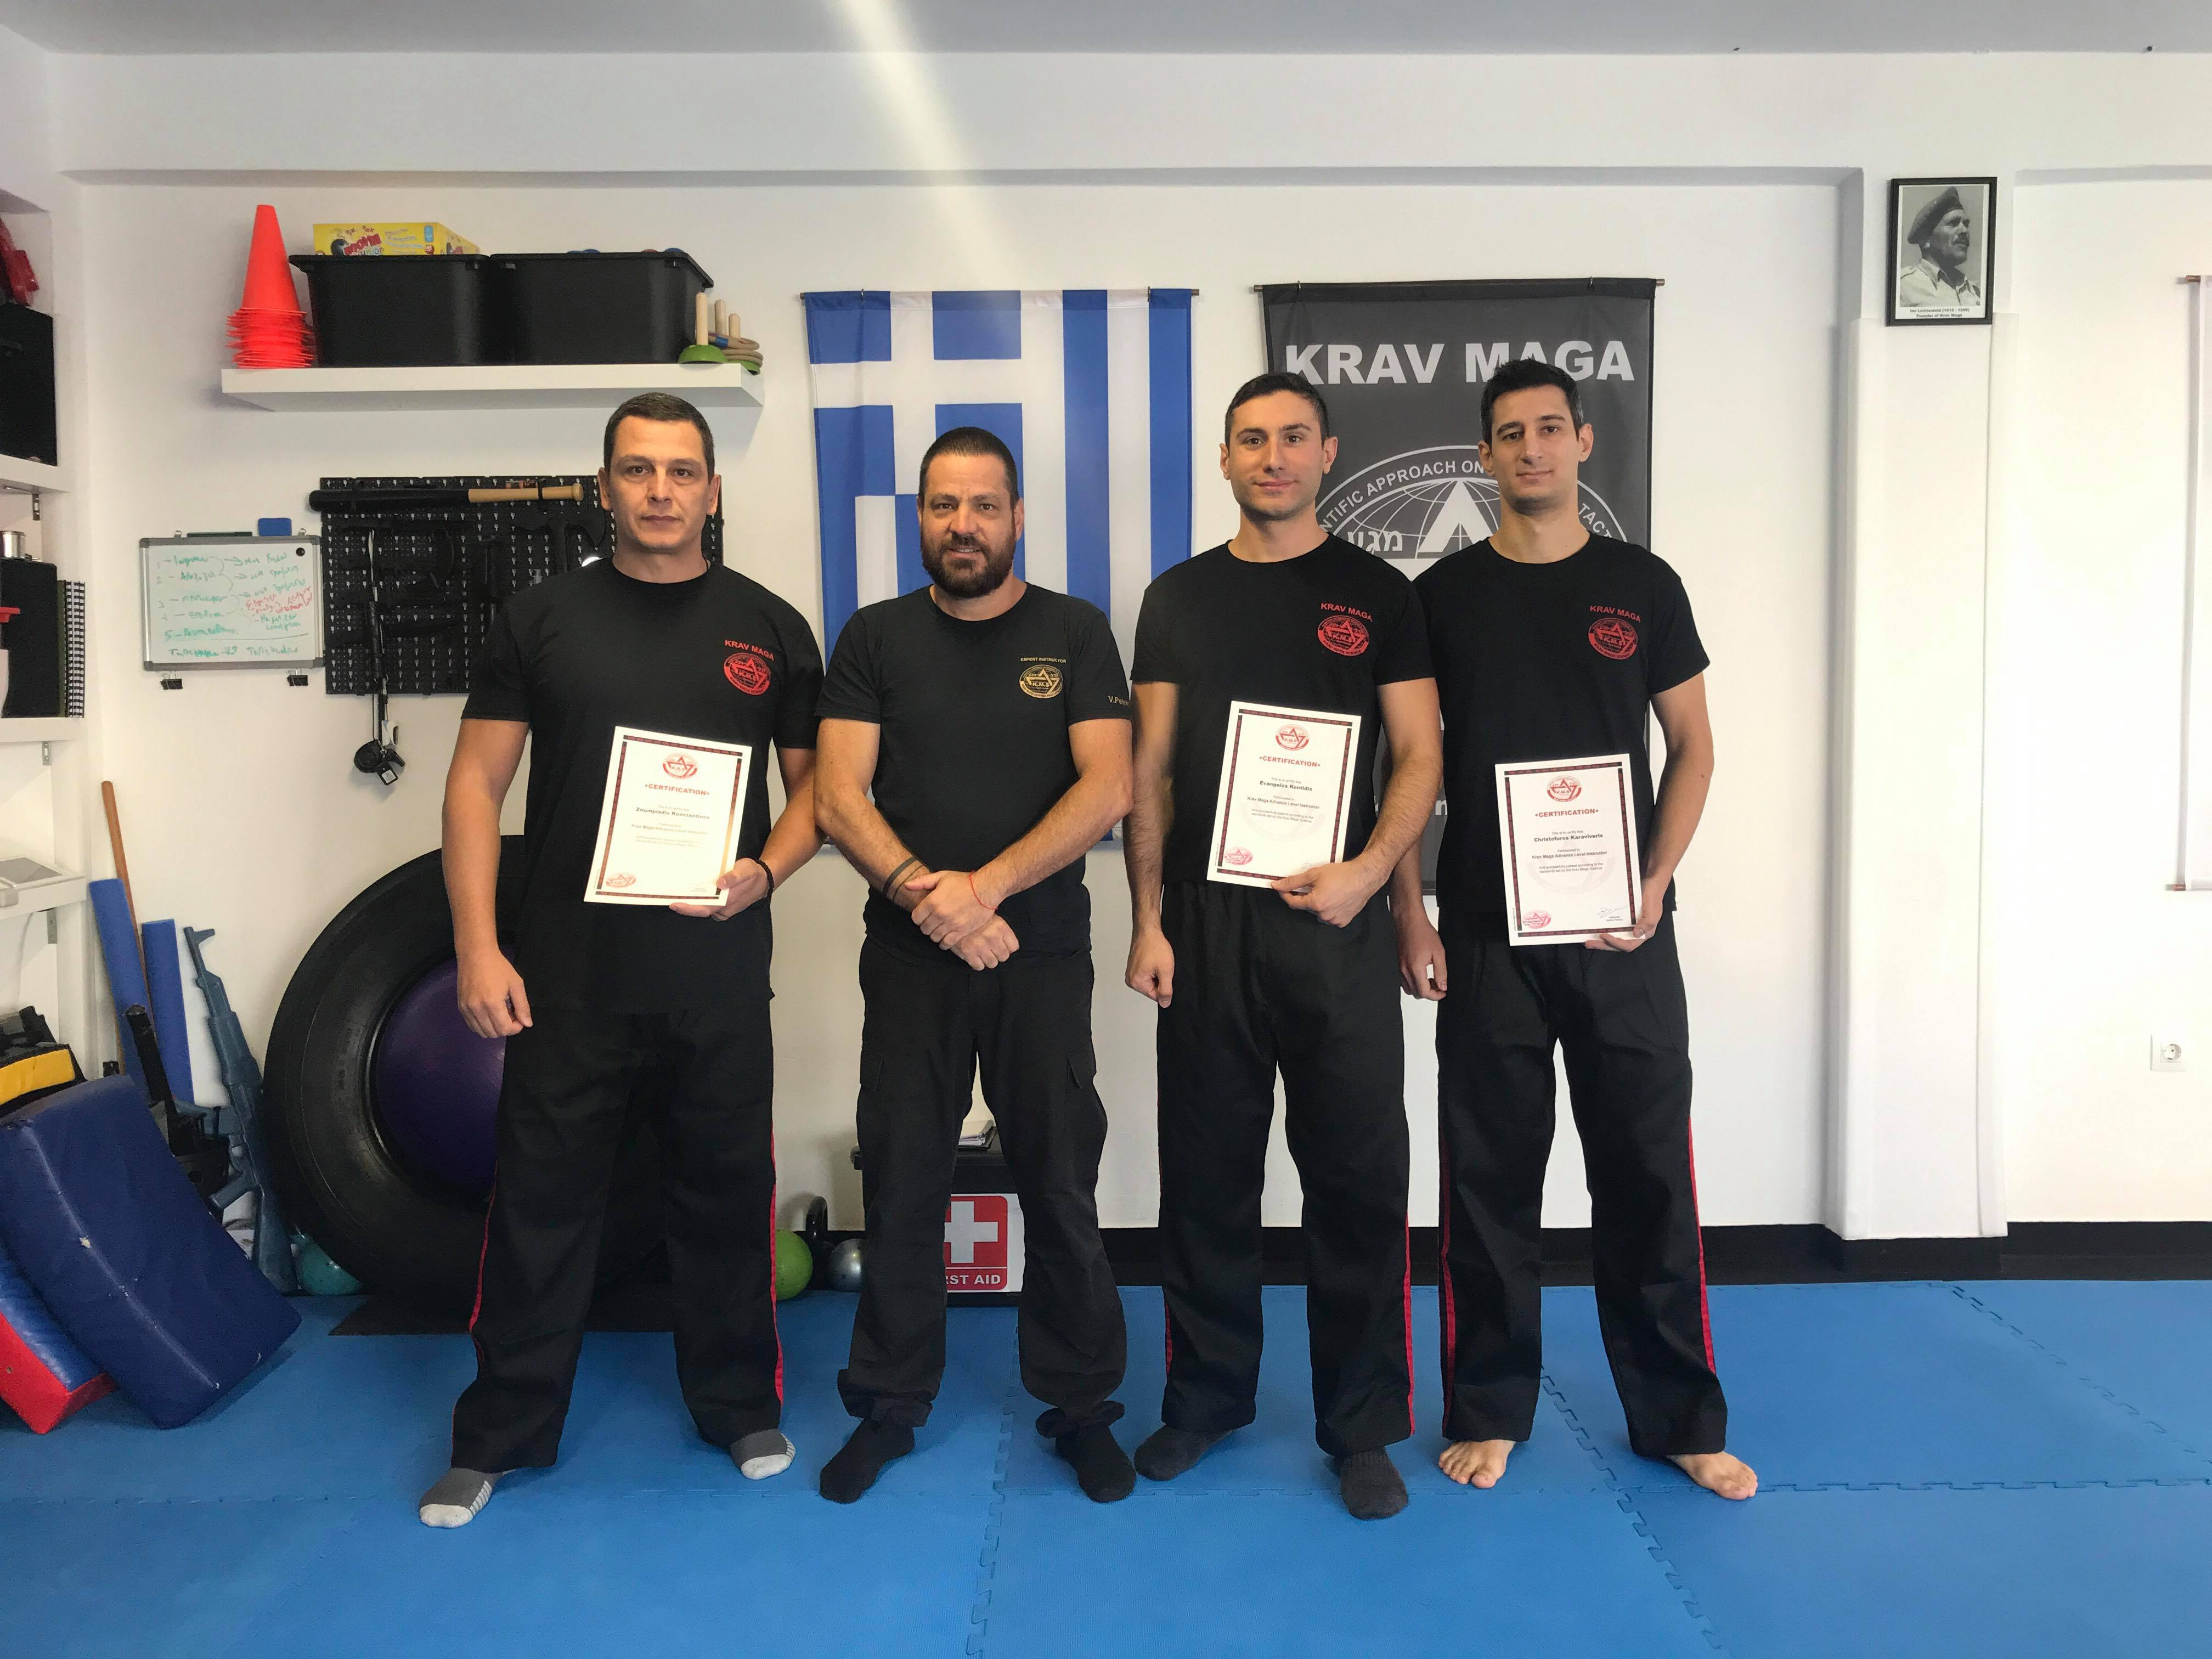 krav maga science, instructor, team